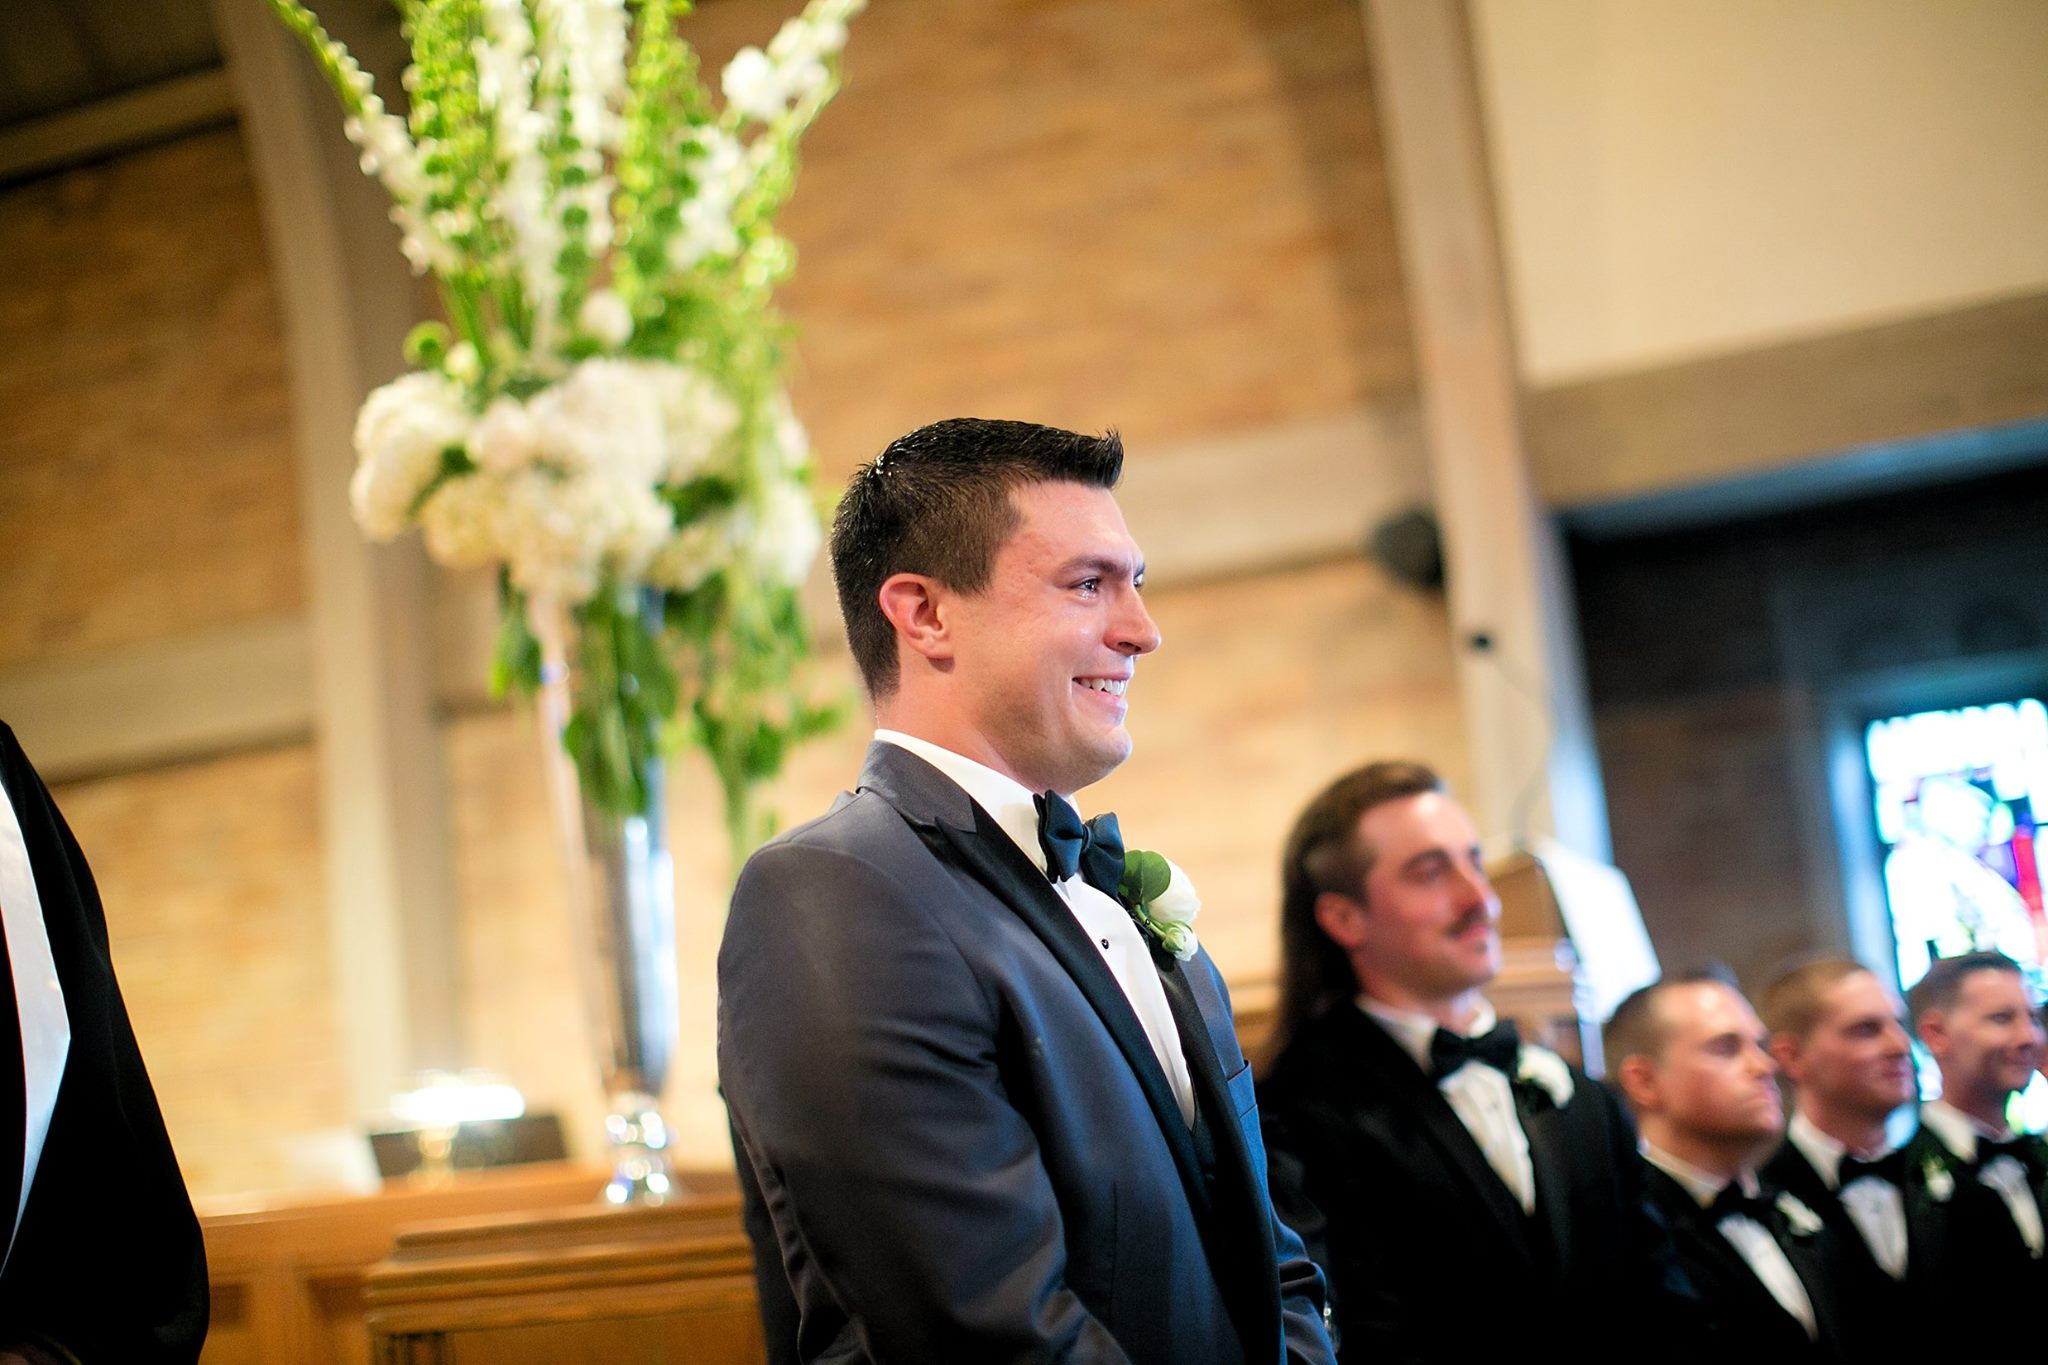 LNL love 'n' labels: Wedding Wednesday Photography & Videography